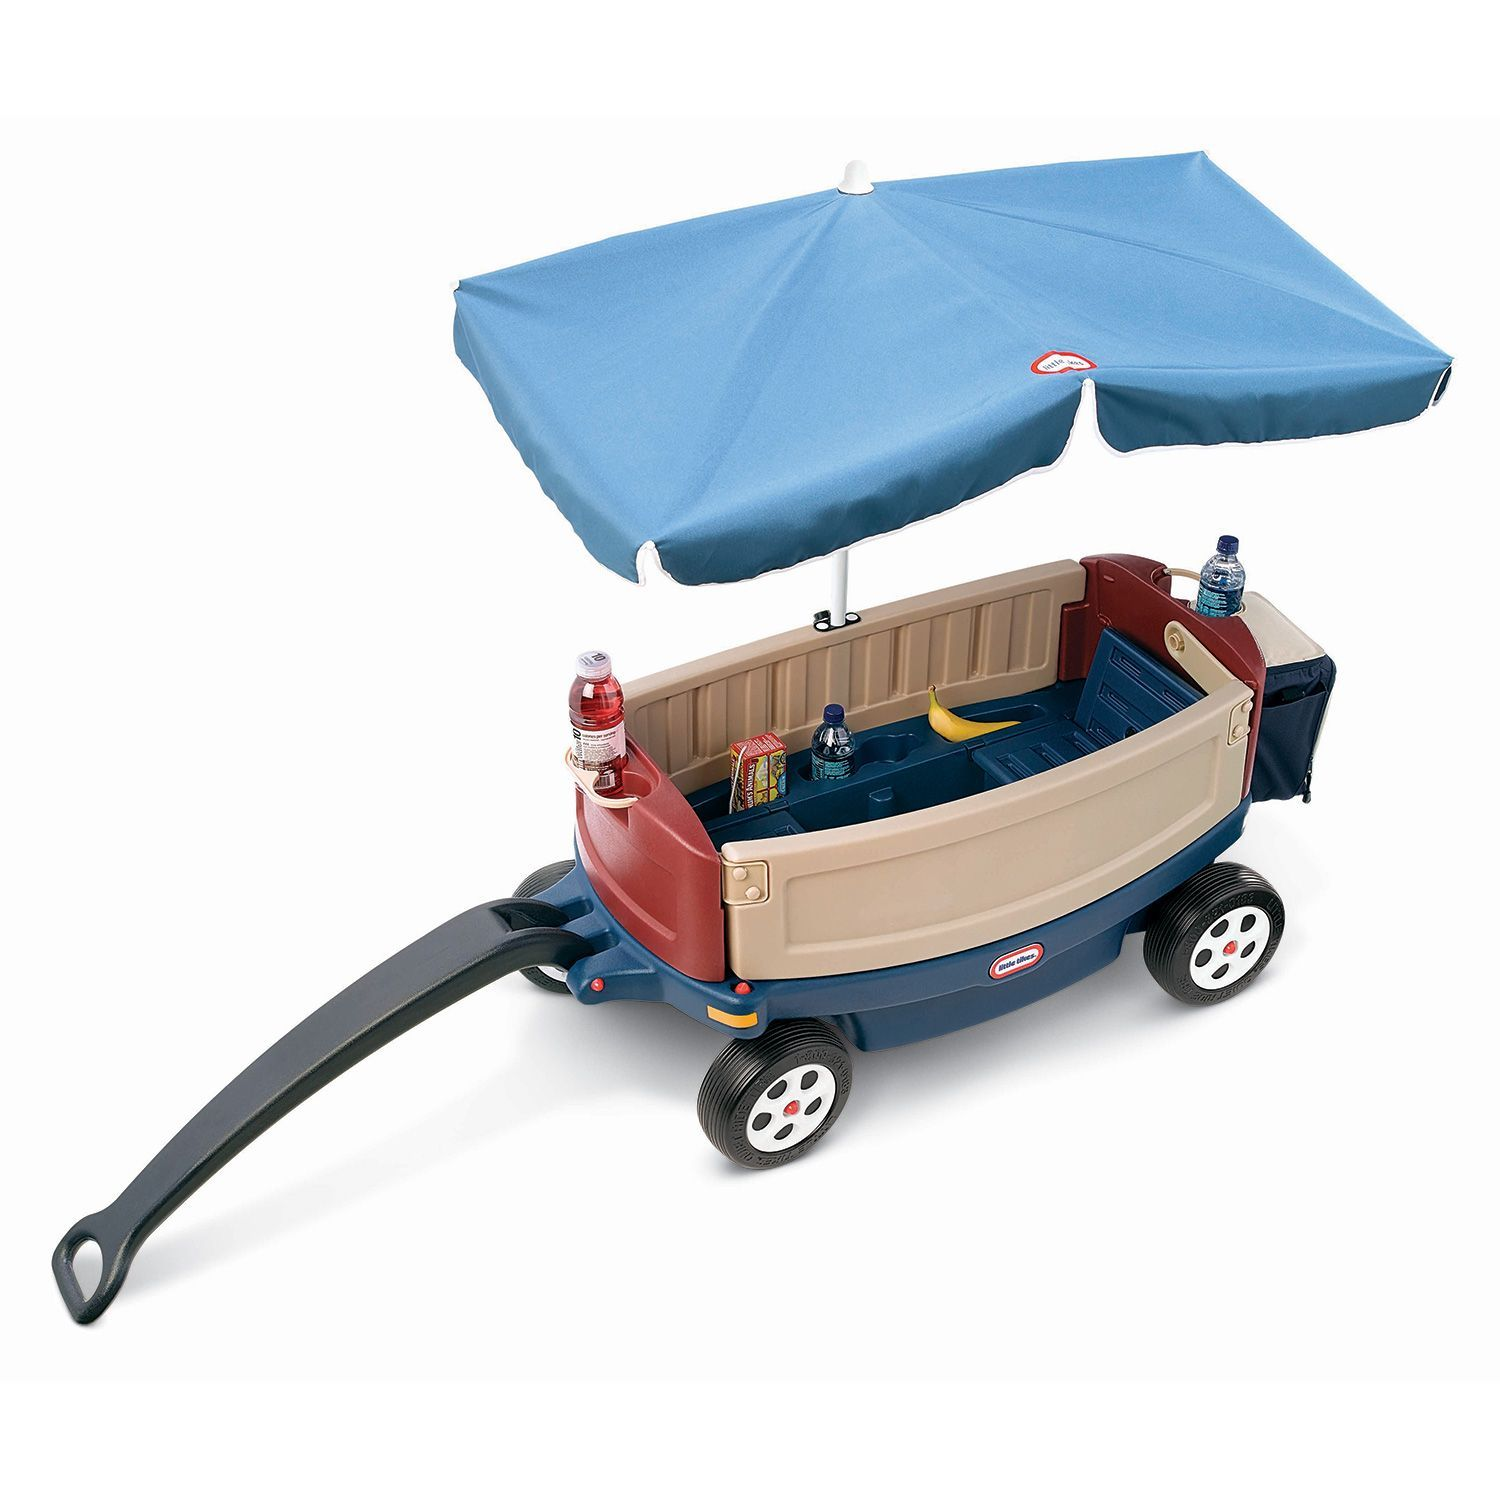 Deluxe Ride Relax Wagon With Umbrella Cooler Sam S Club